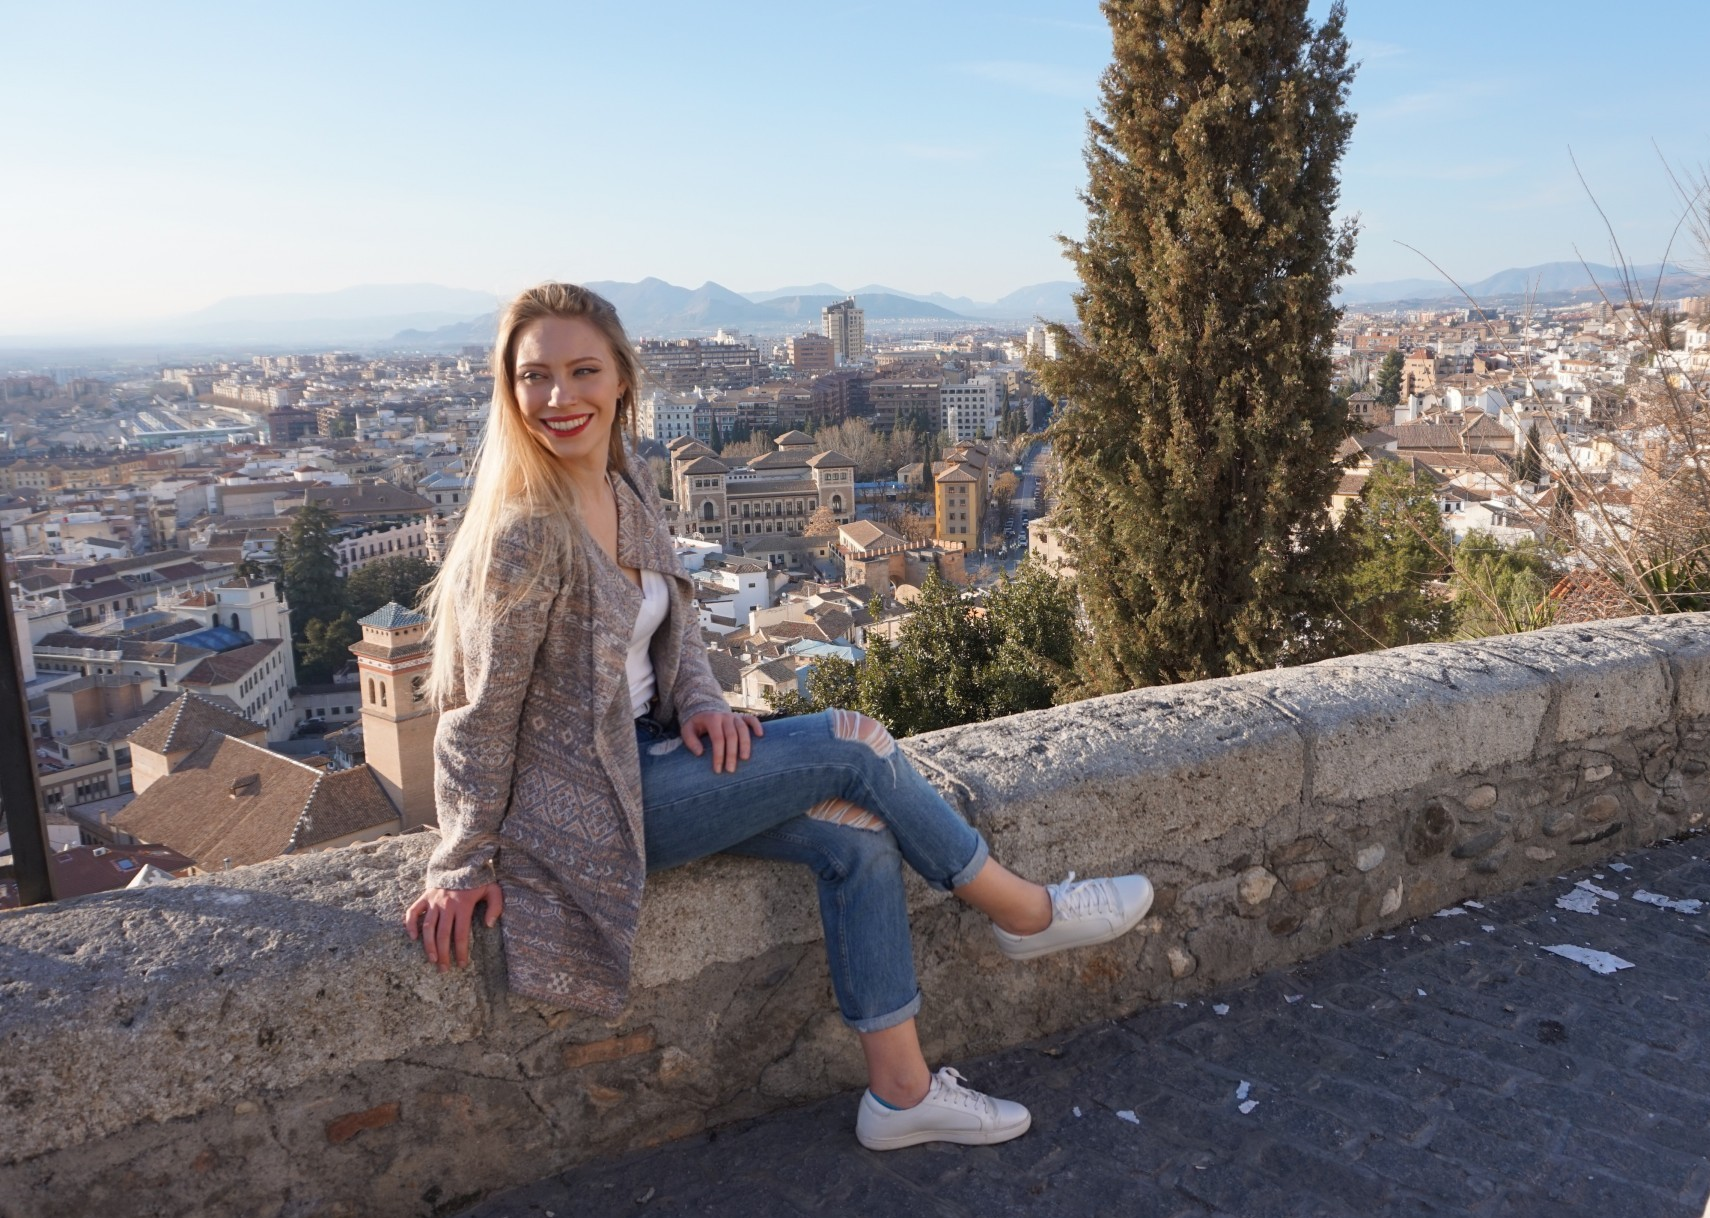 Granada: A Historic Jewel